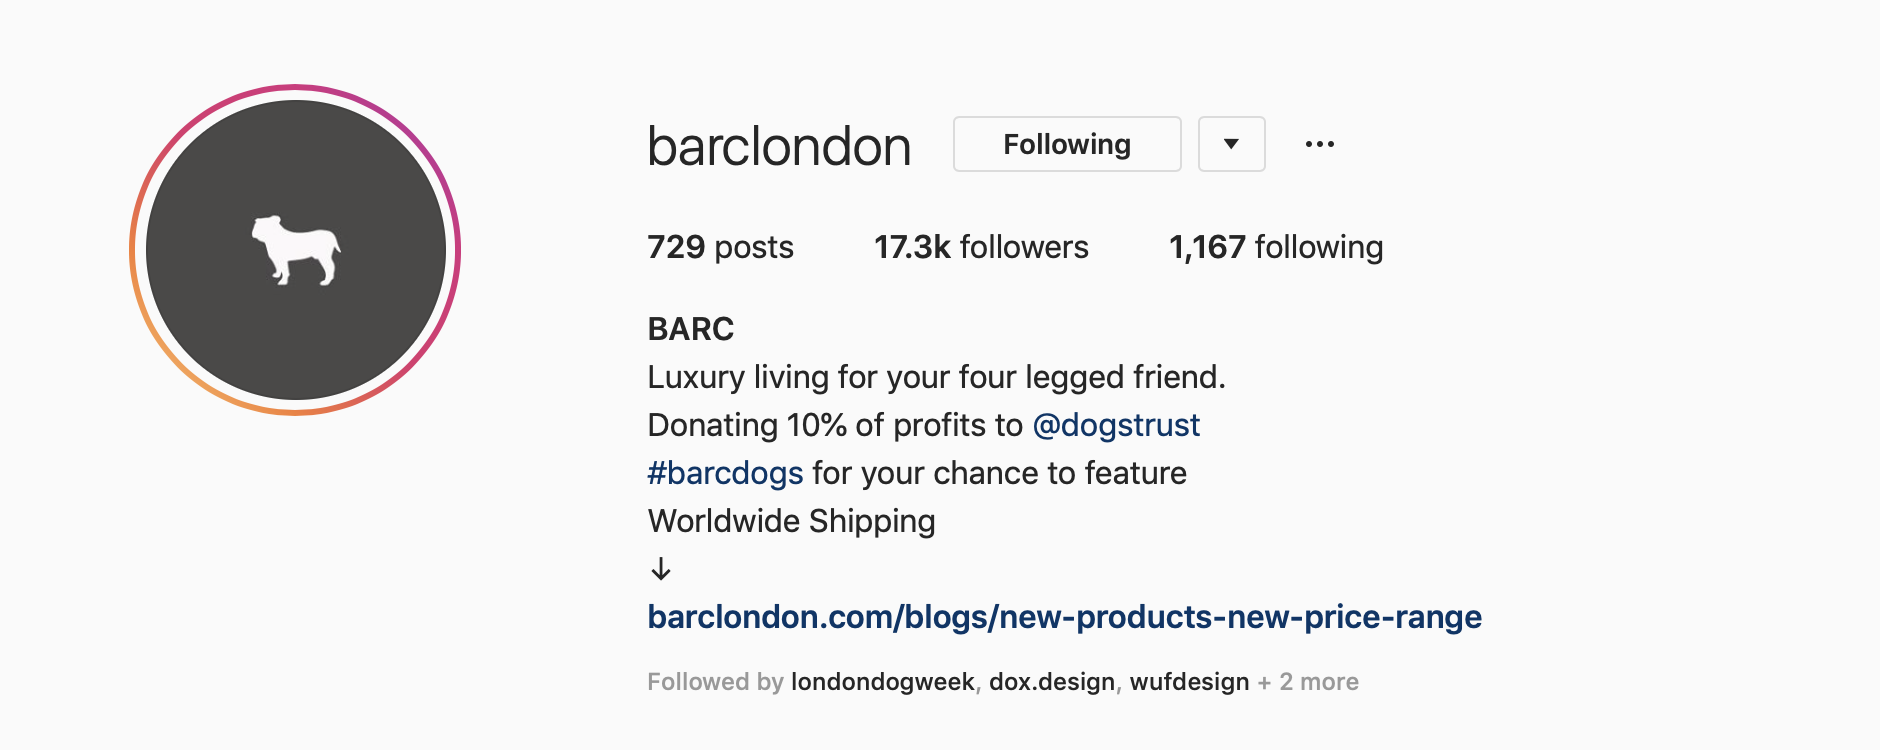 barclondon instagram page